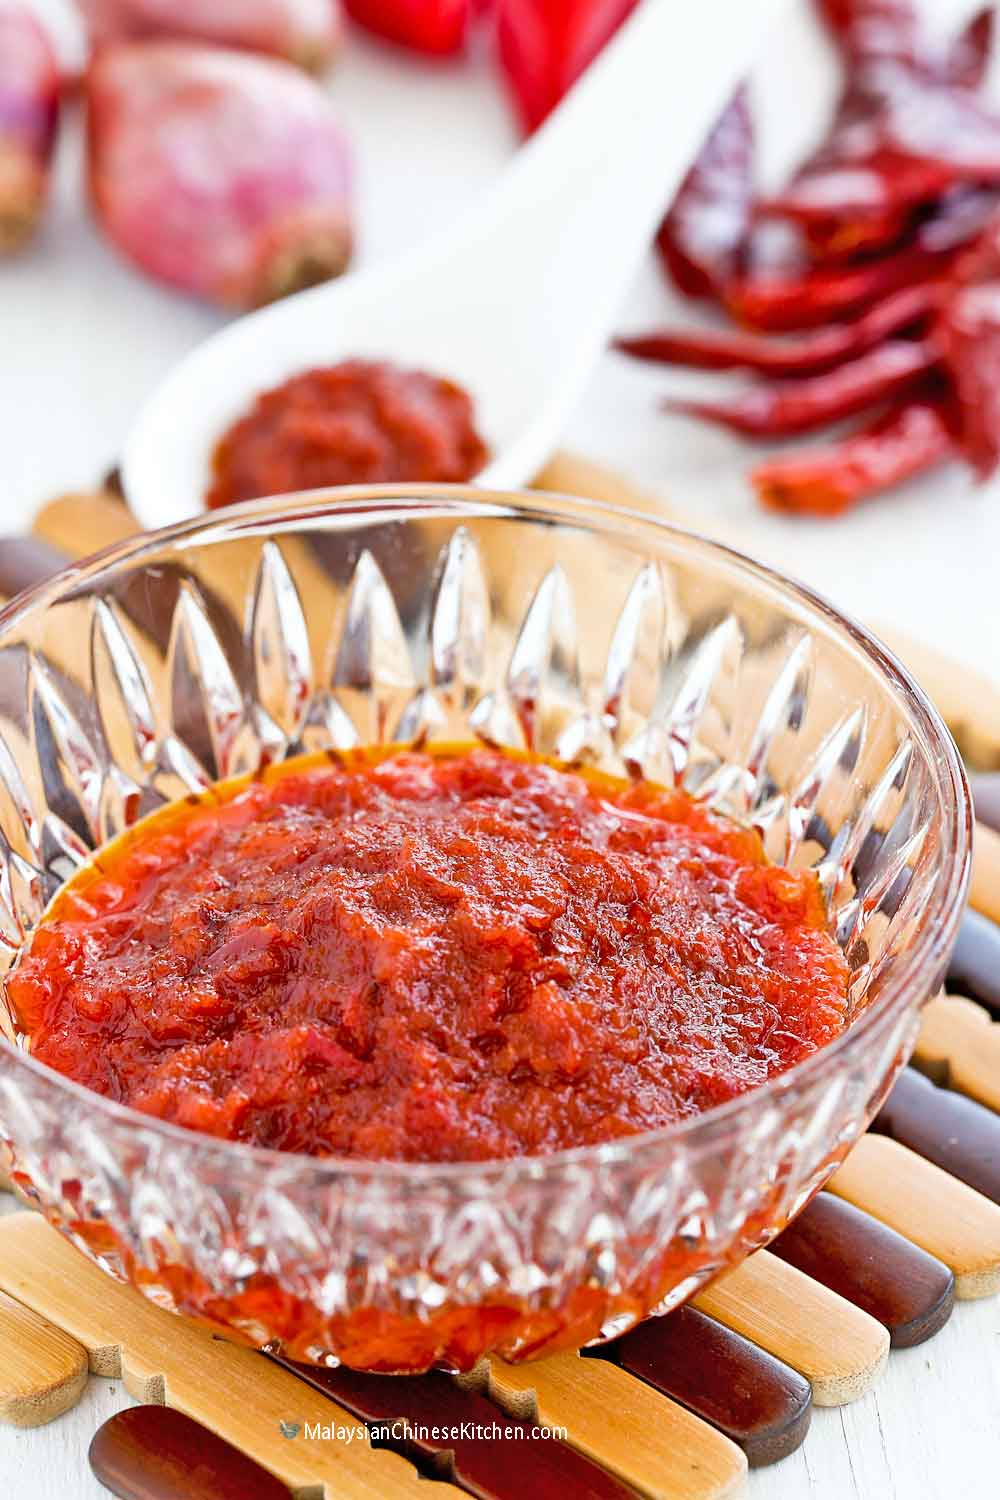 Fried Chili Paste - the perfect spicy condiment